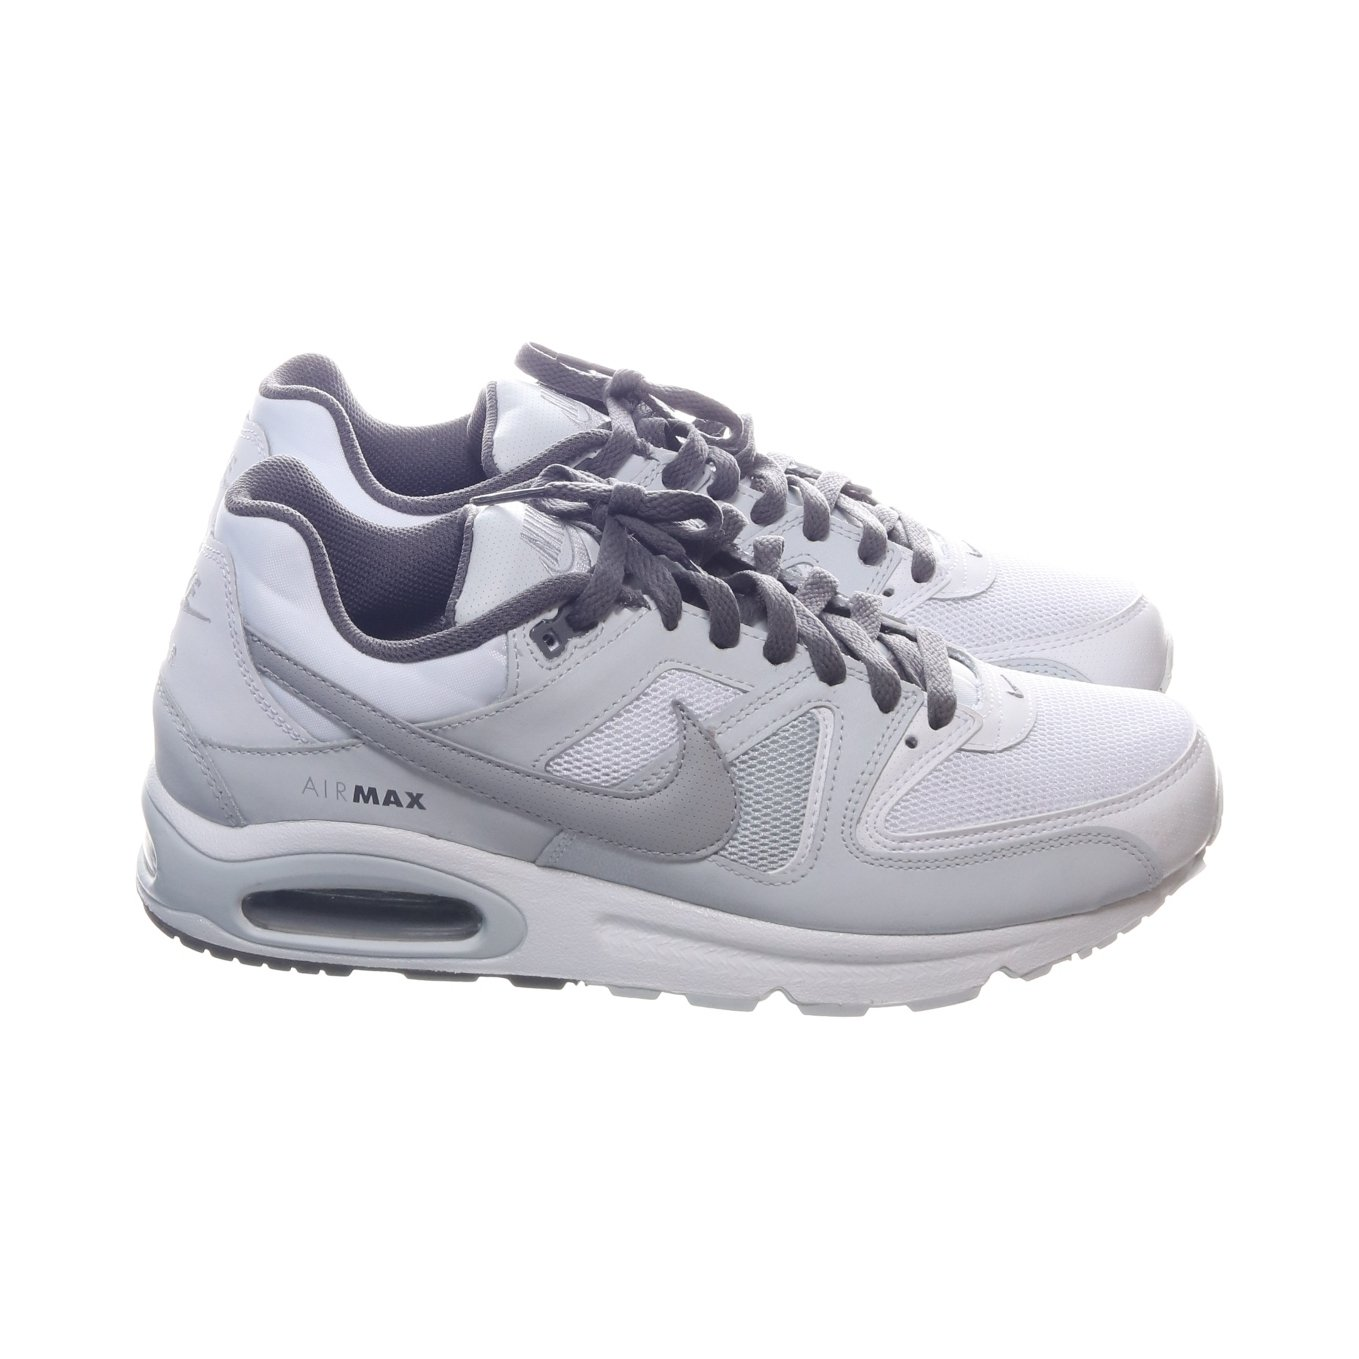 Nike, Sneakers, Strl: 43, Air Max Command.. (356836765) ᐈ